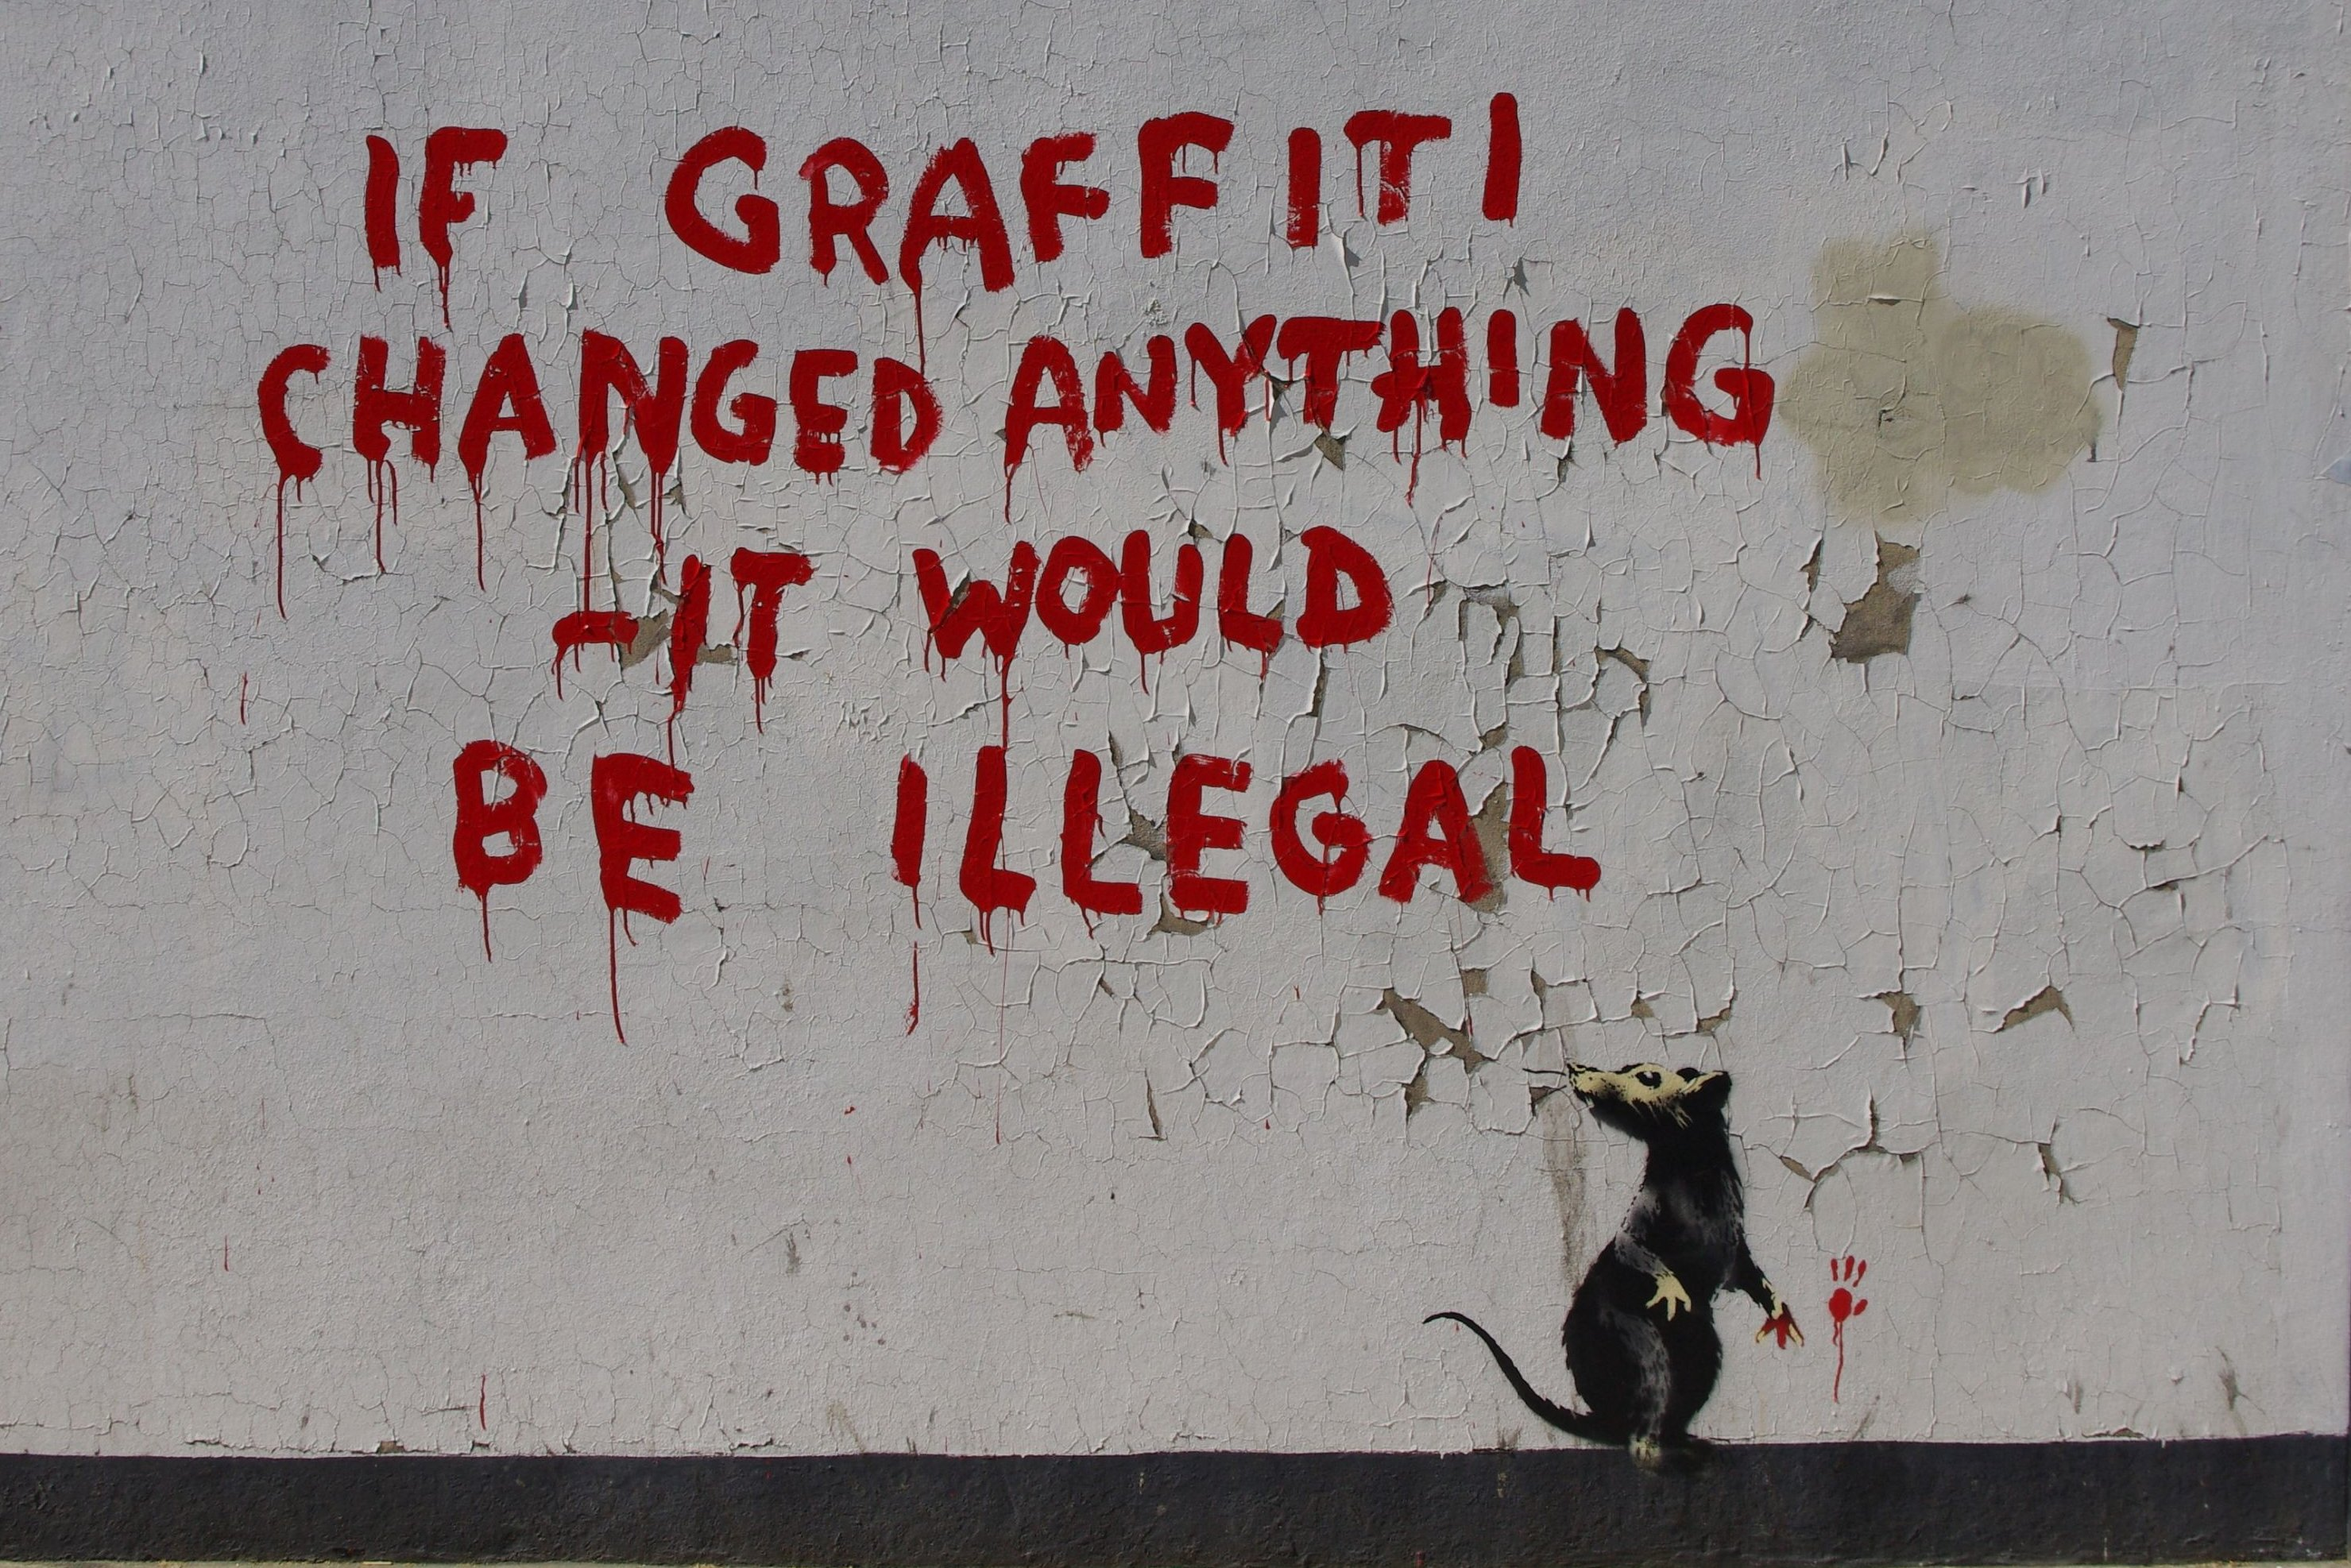 https://fitzrovianews.files.wordpress.com/2011/04/banksy_clipstone_crop.jpg